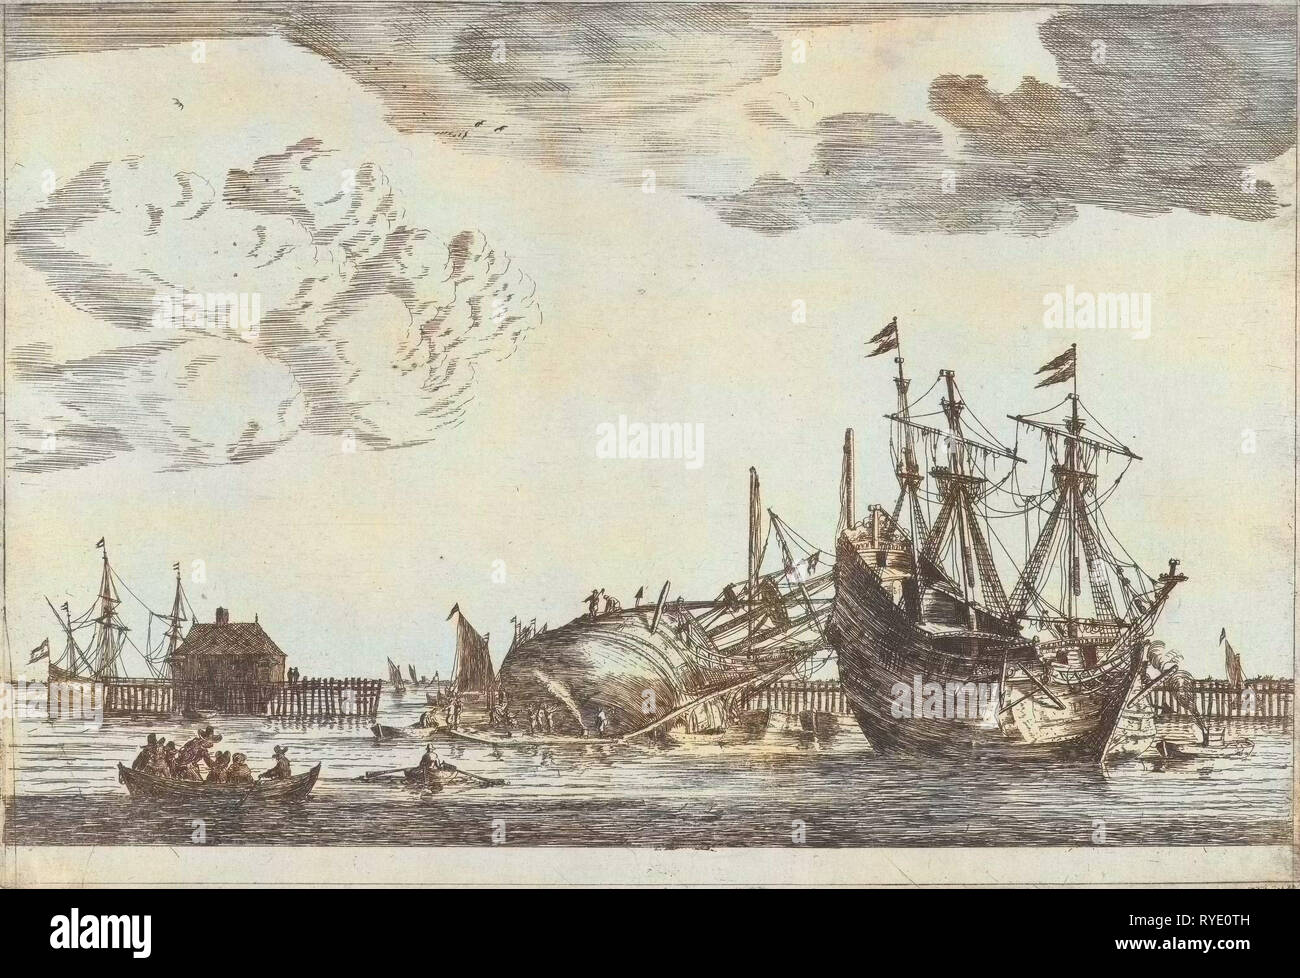 Two ships are ready for repair, Reinier Nooms, 1650 - 1664 - Stock Image